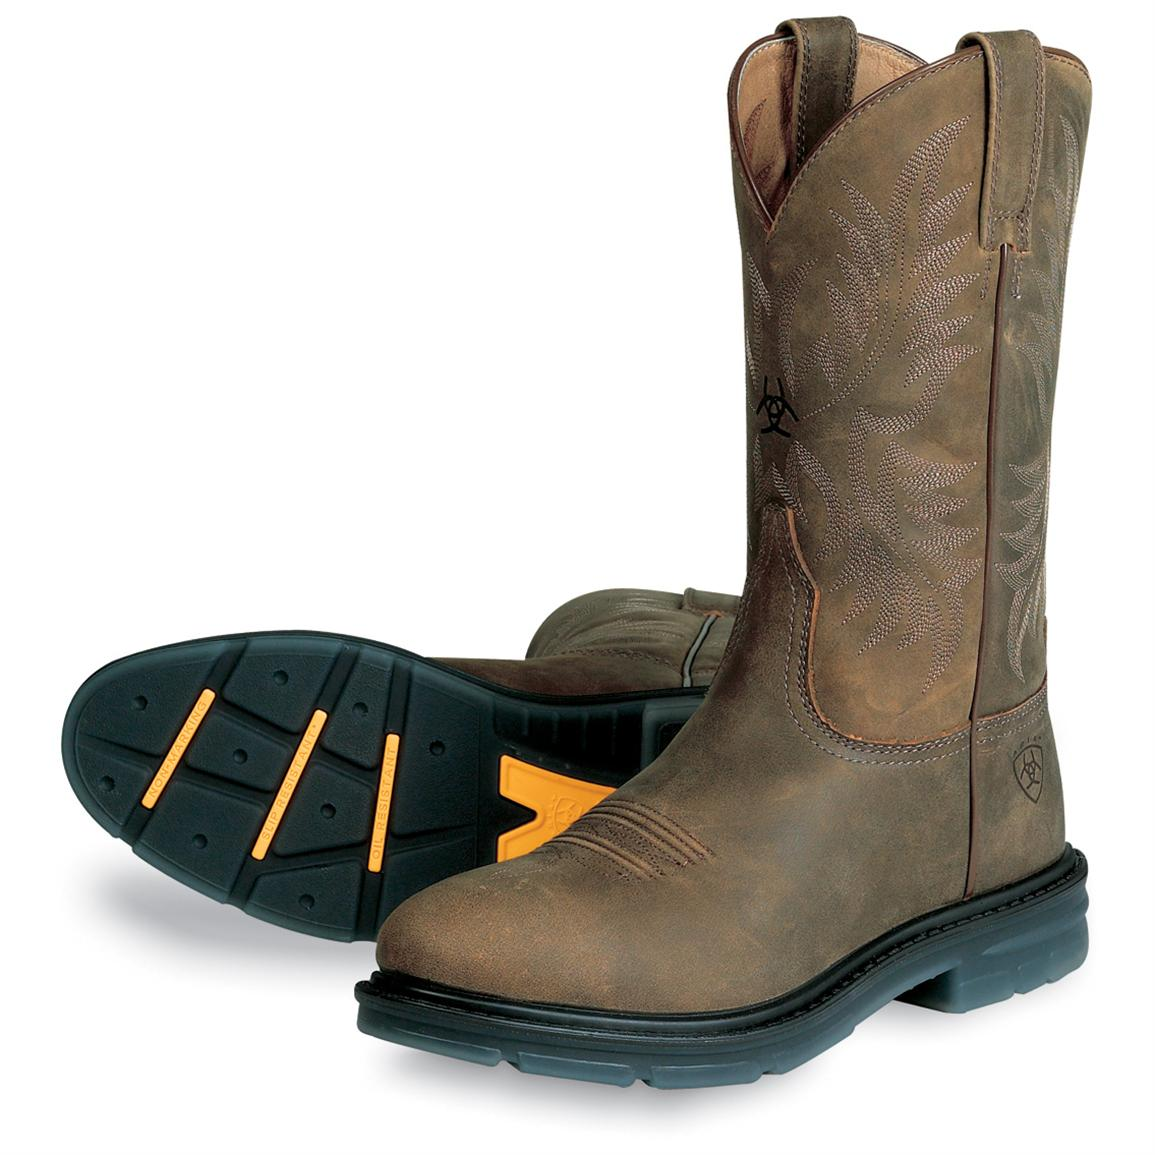 Ariat Work Boots For Men yXxeRIqj